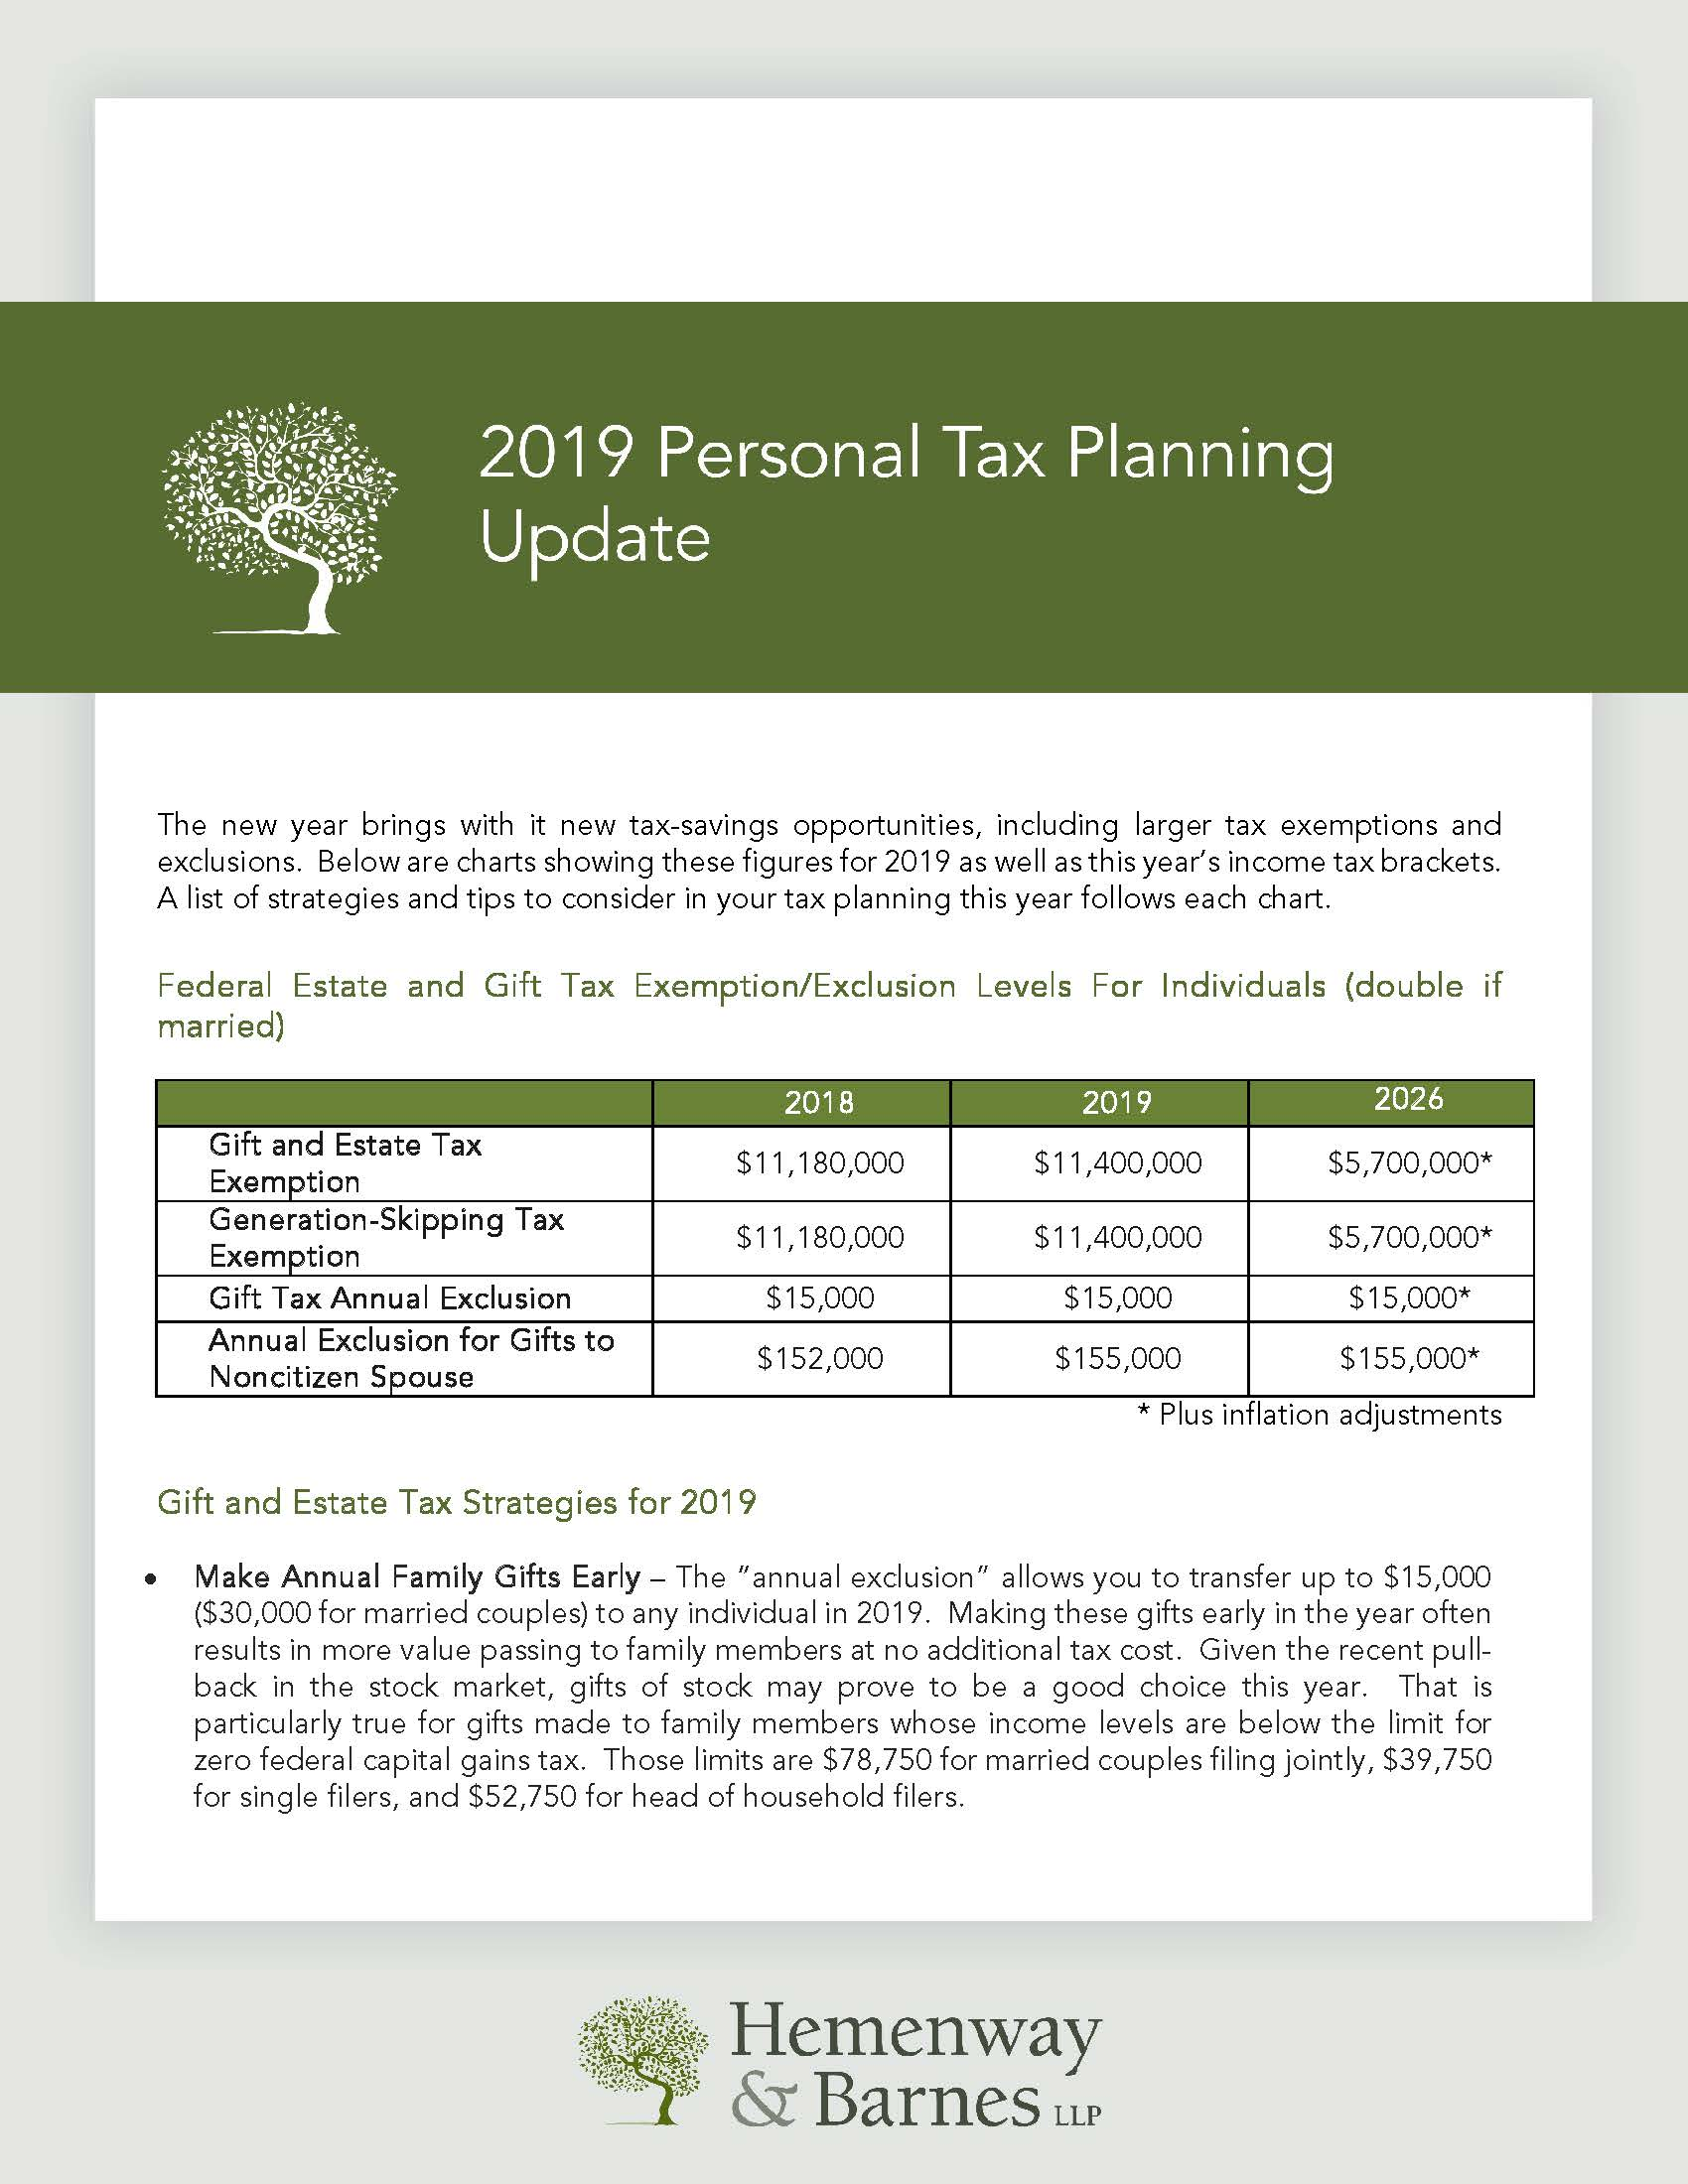 2019 Personal Tax Planning Update